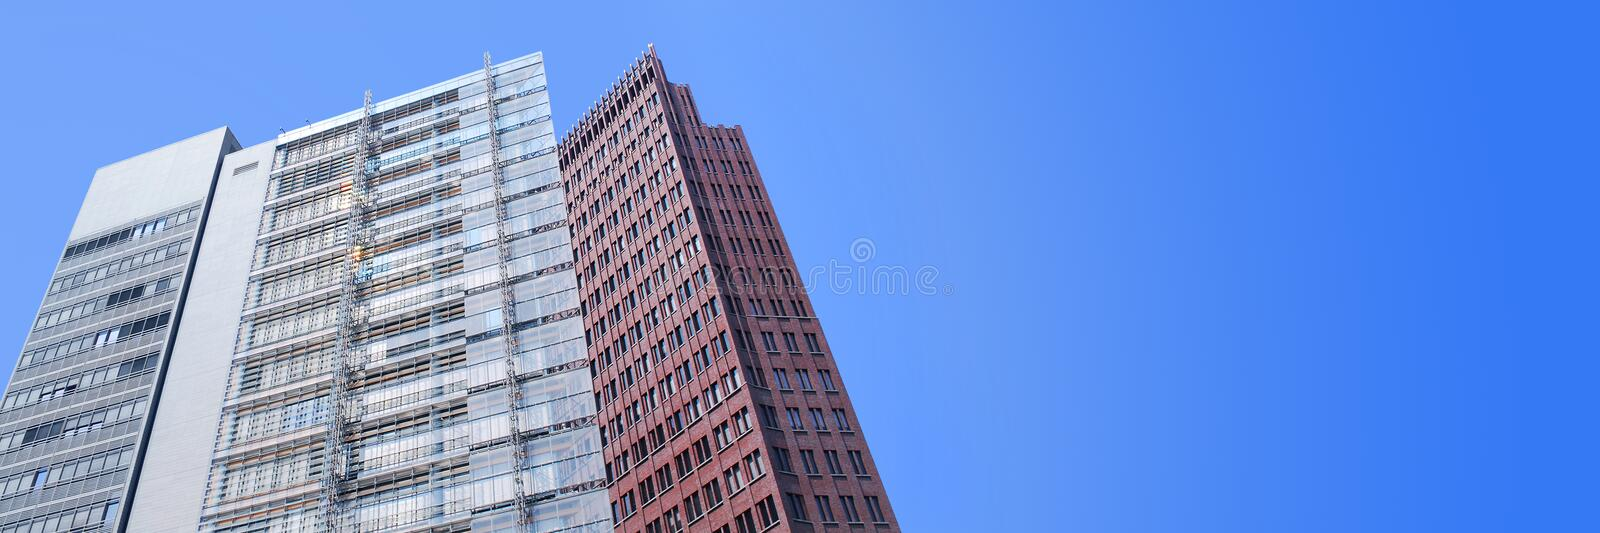 Download Buildings banner stock image. Image of business, blue - 33225537